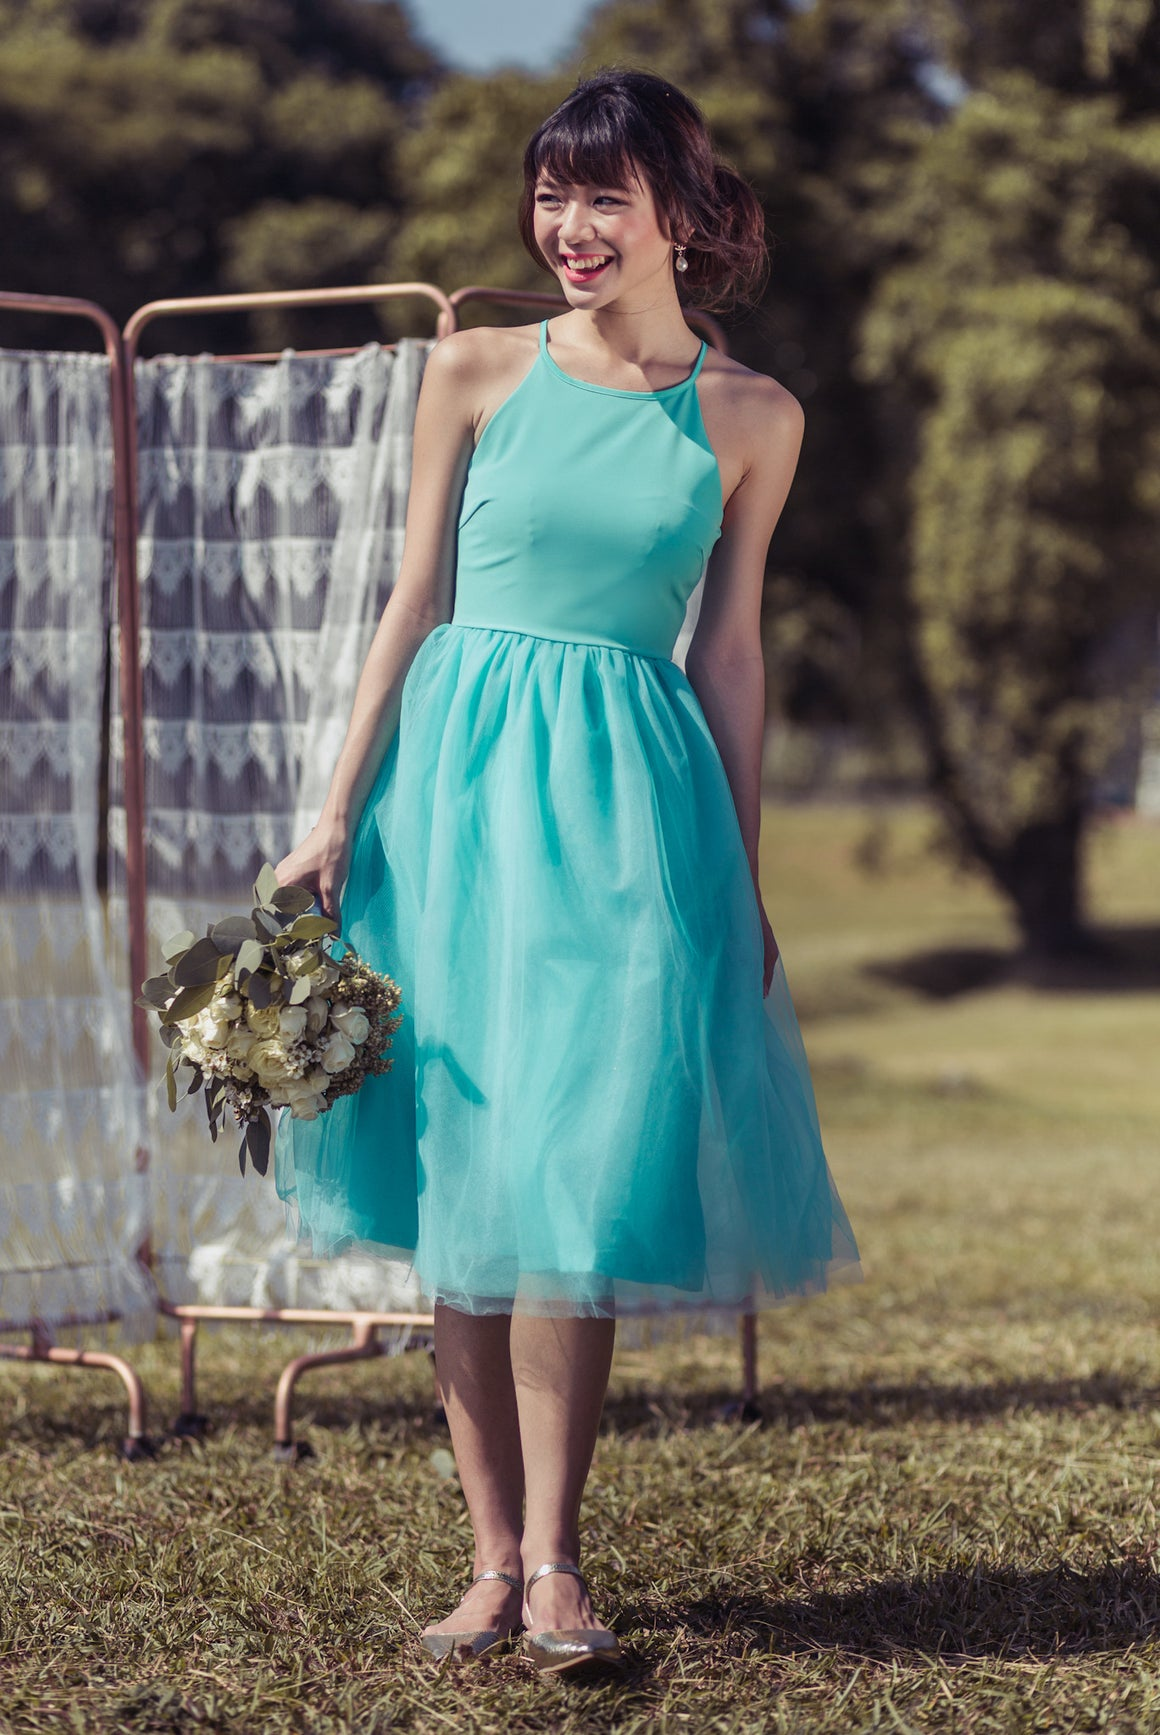 Restocked** Midsummer's Night Tulle Dress In Mint